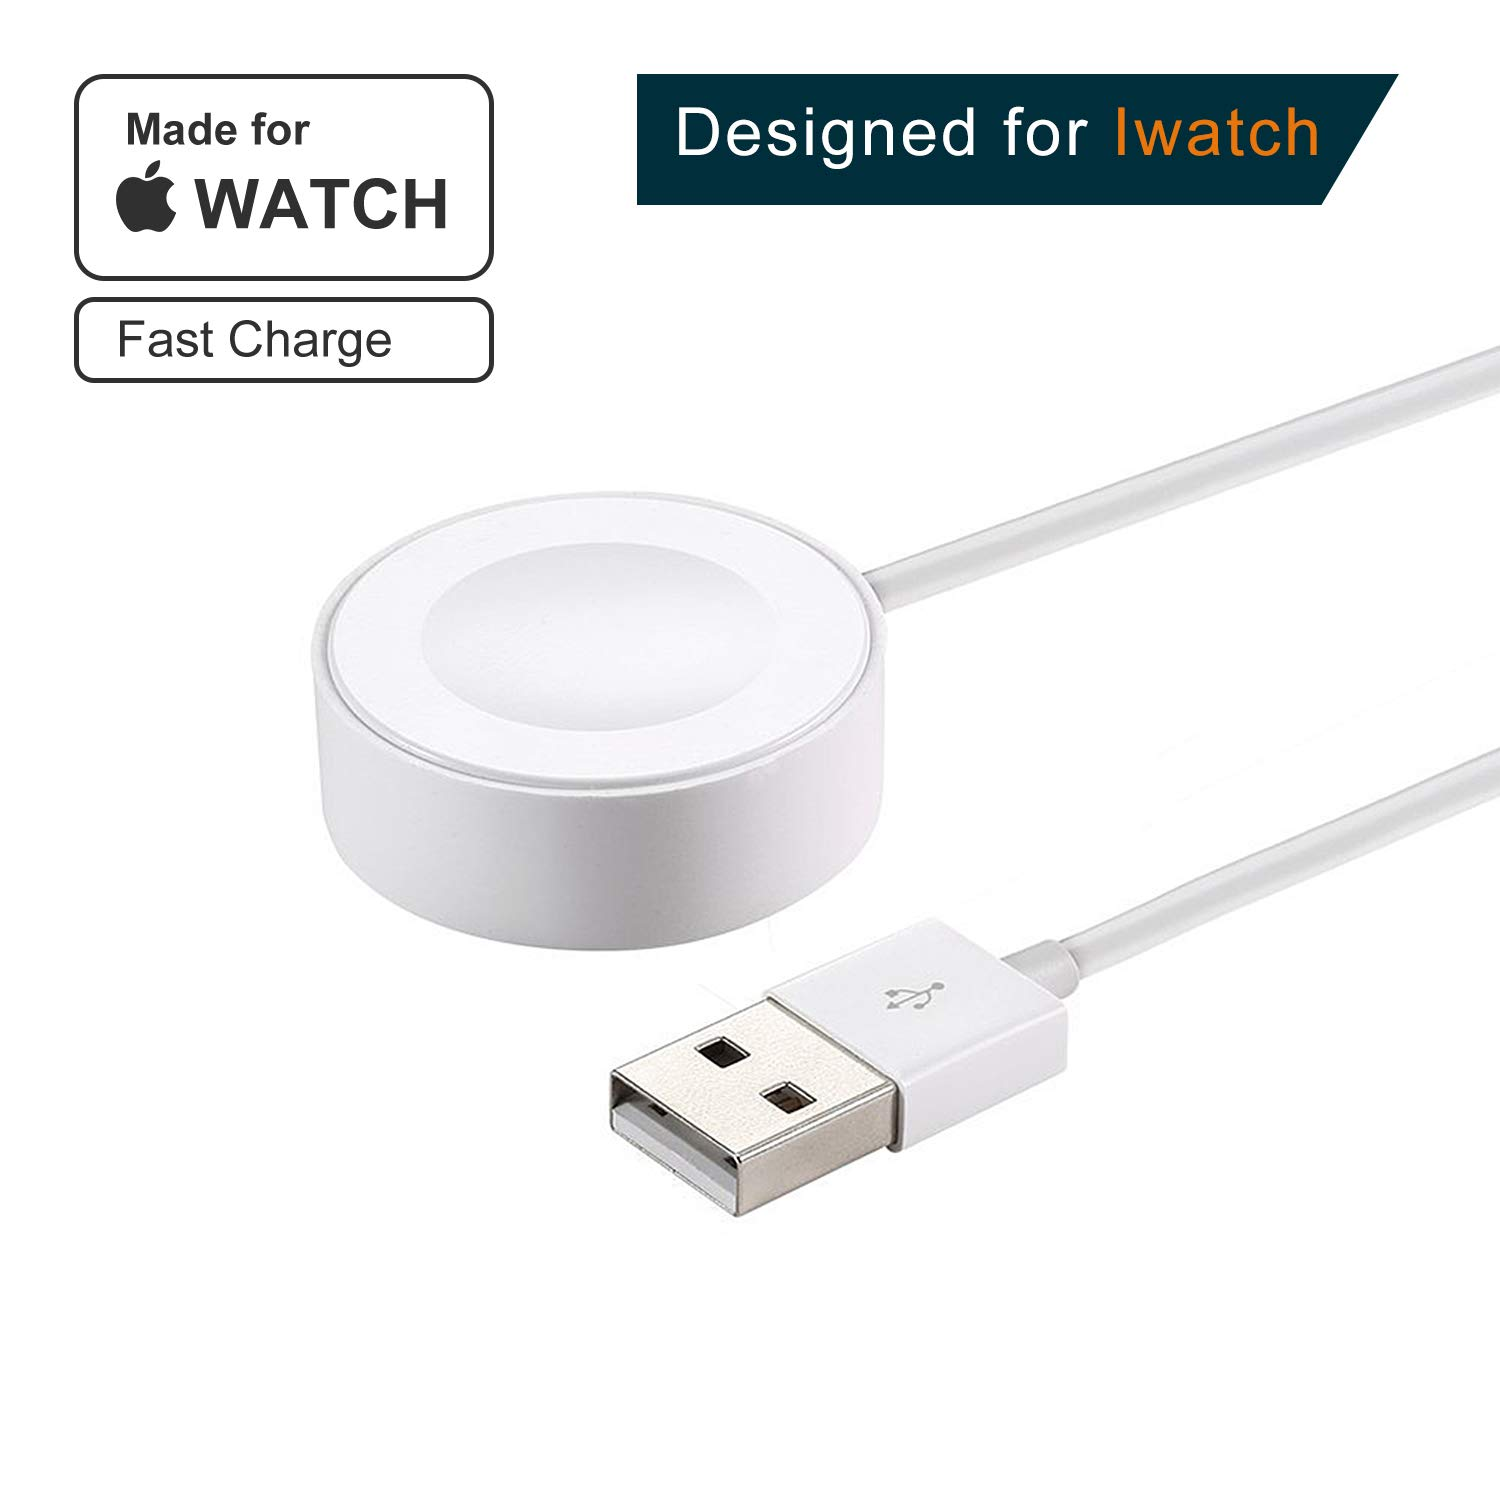 [ Apple MFi Certified ]Apple Watch Charger,3.3FT Magnetic Fast Wireless iWatch Charger Charging Cable Cord for Apple Watch Series 2/3 (38mm & 42mm),Fits Standard Apple Dock